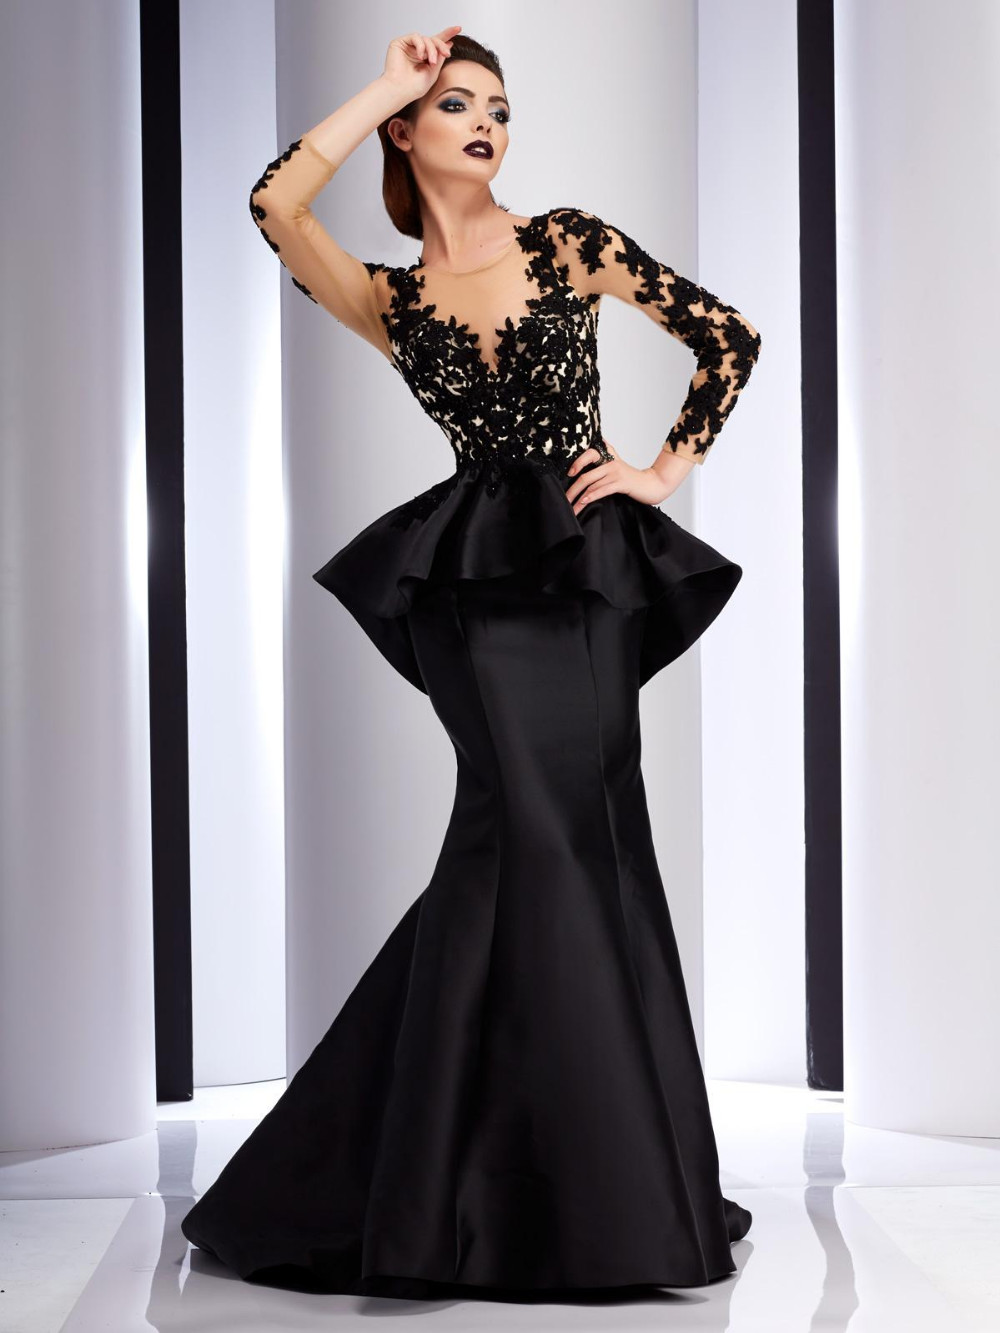 Luxury Used Evening Gowns Sale Gift - Images for wedding gown ideas ...